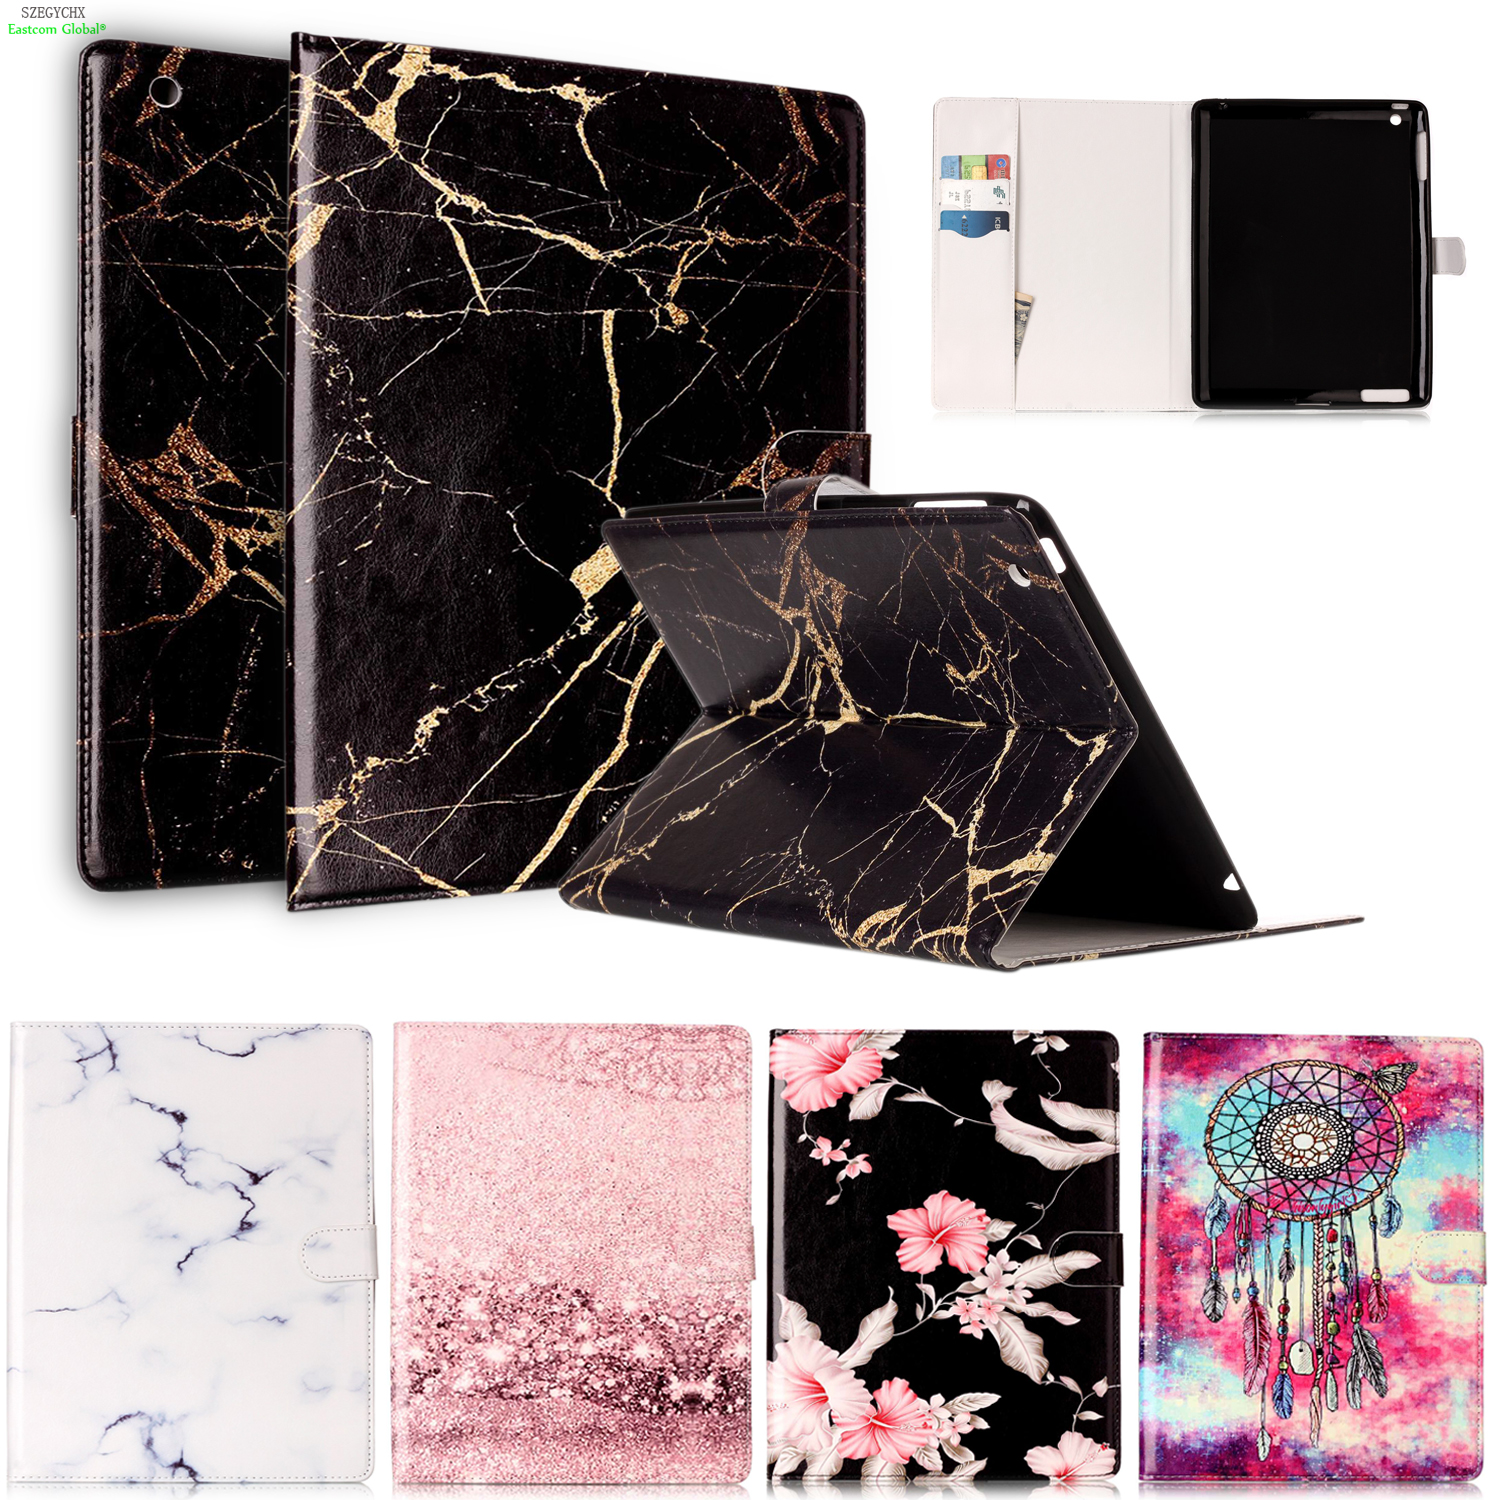 Marble Pattern PU Leather Case For iPad 2 3 4 Case Smart Stand Flip Cover For iPad 3 2 4 Tablet Stand Original Ultra Slim Shell lichee pattern protective pu leather case stand w auto sleep cover for google nexus 7 ii white